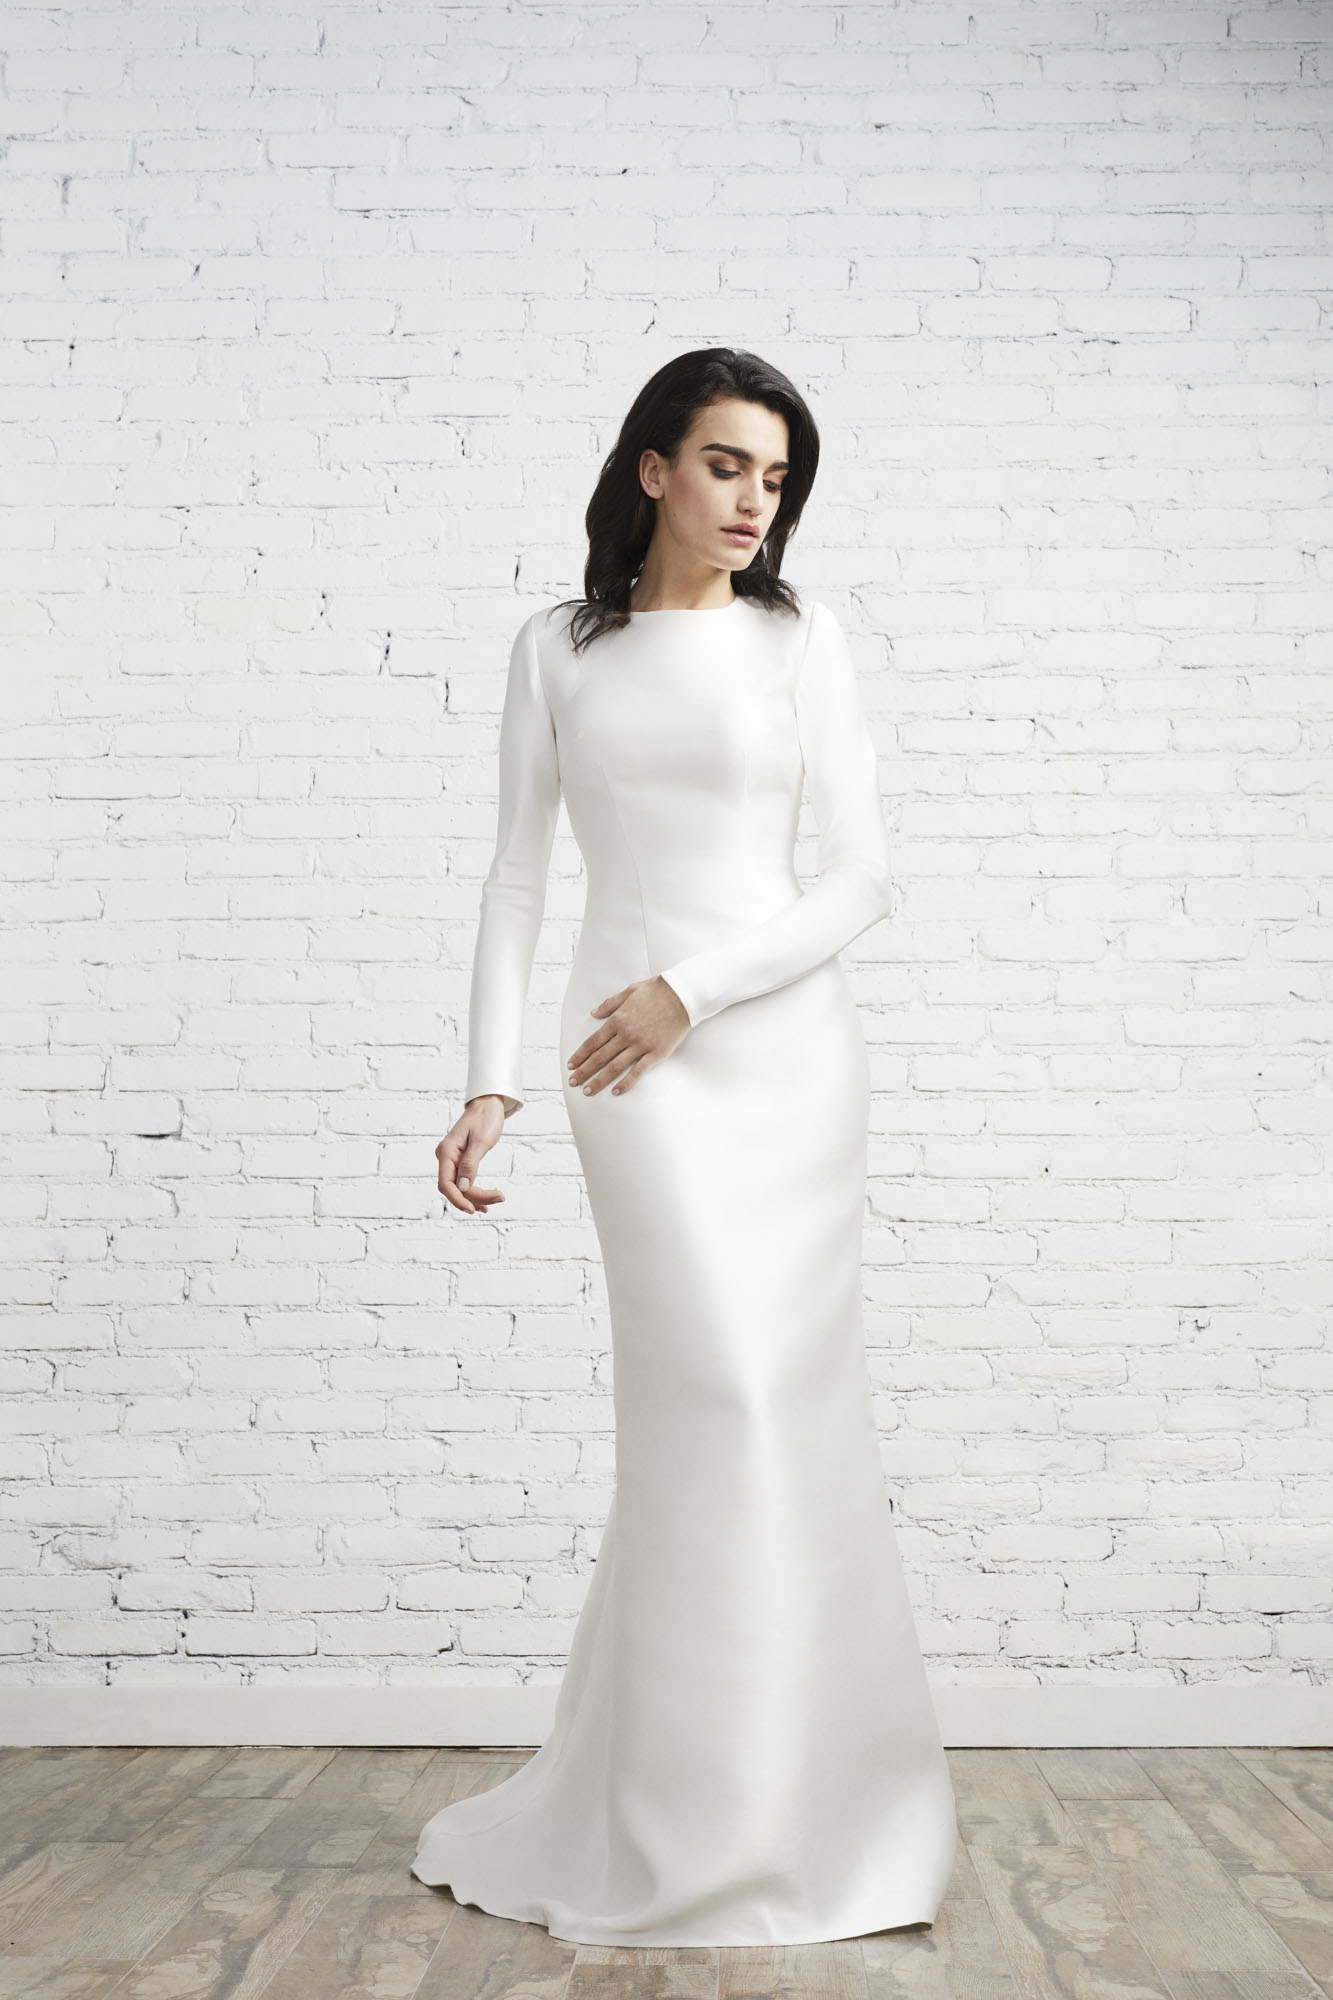 Equal parts edgy and modern, the long sleeve Bella gown has a wide open back and is designed for the sophisticated woman seeking an ultra-fitted look.